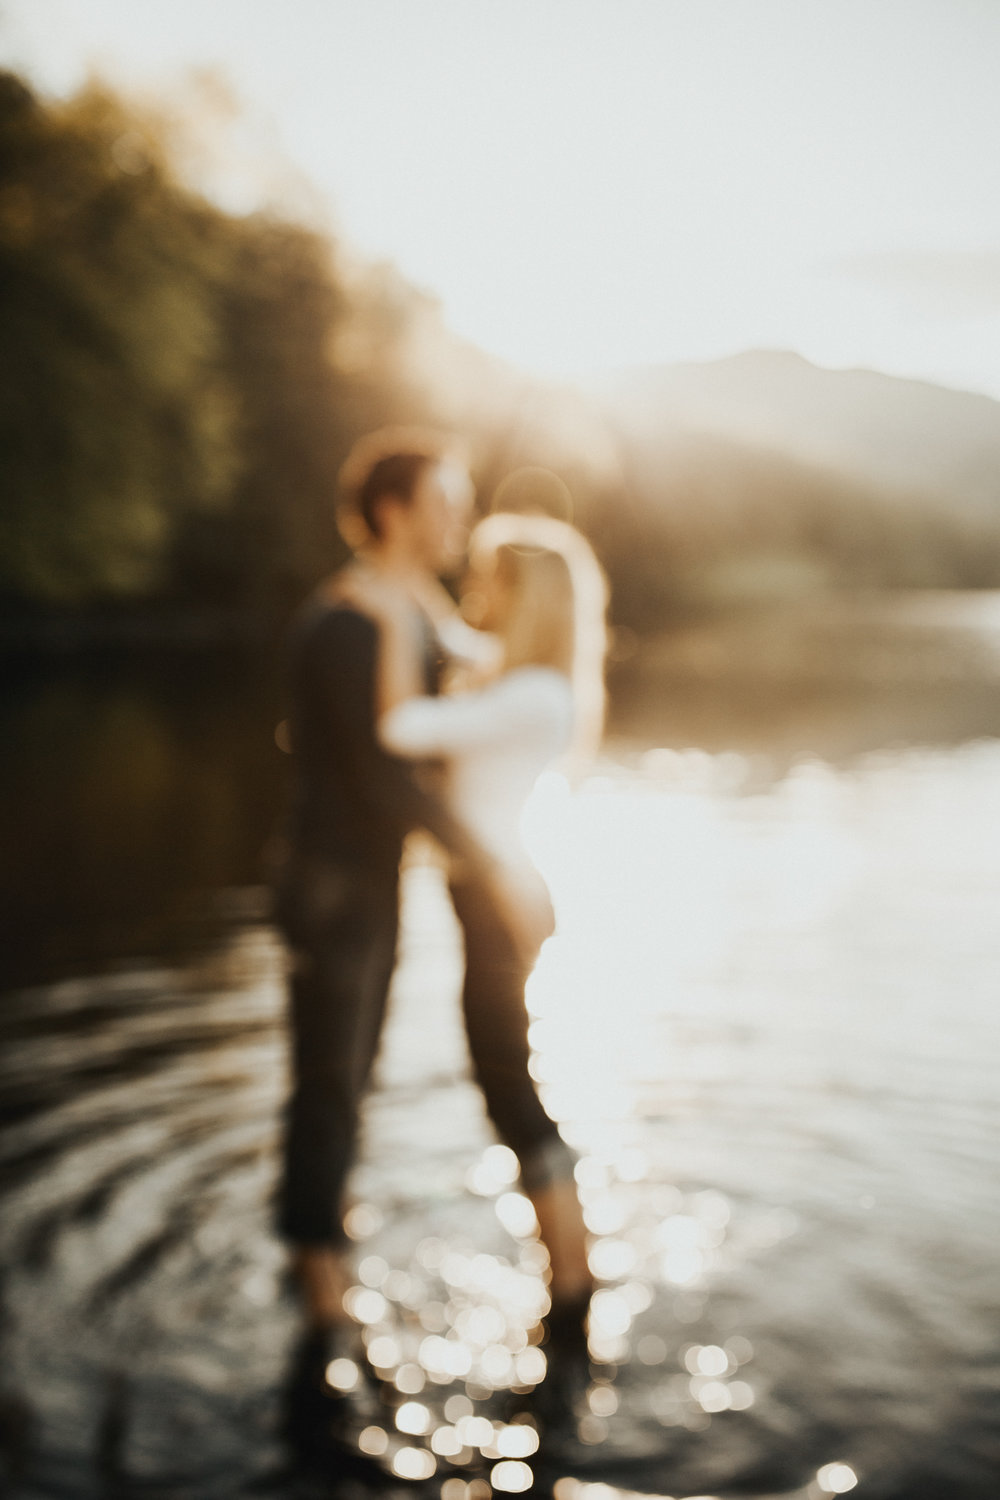 Claire-Clive-Engagement-Shoot-Lake-District-Darina-Stoda-Photography-86.jpg